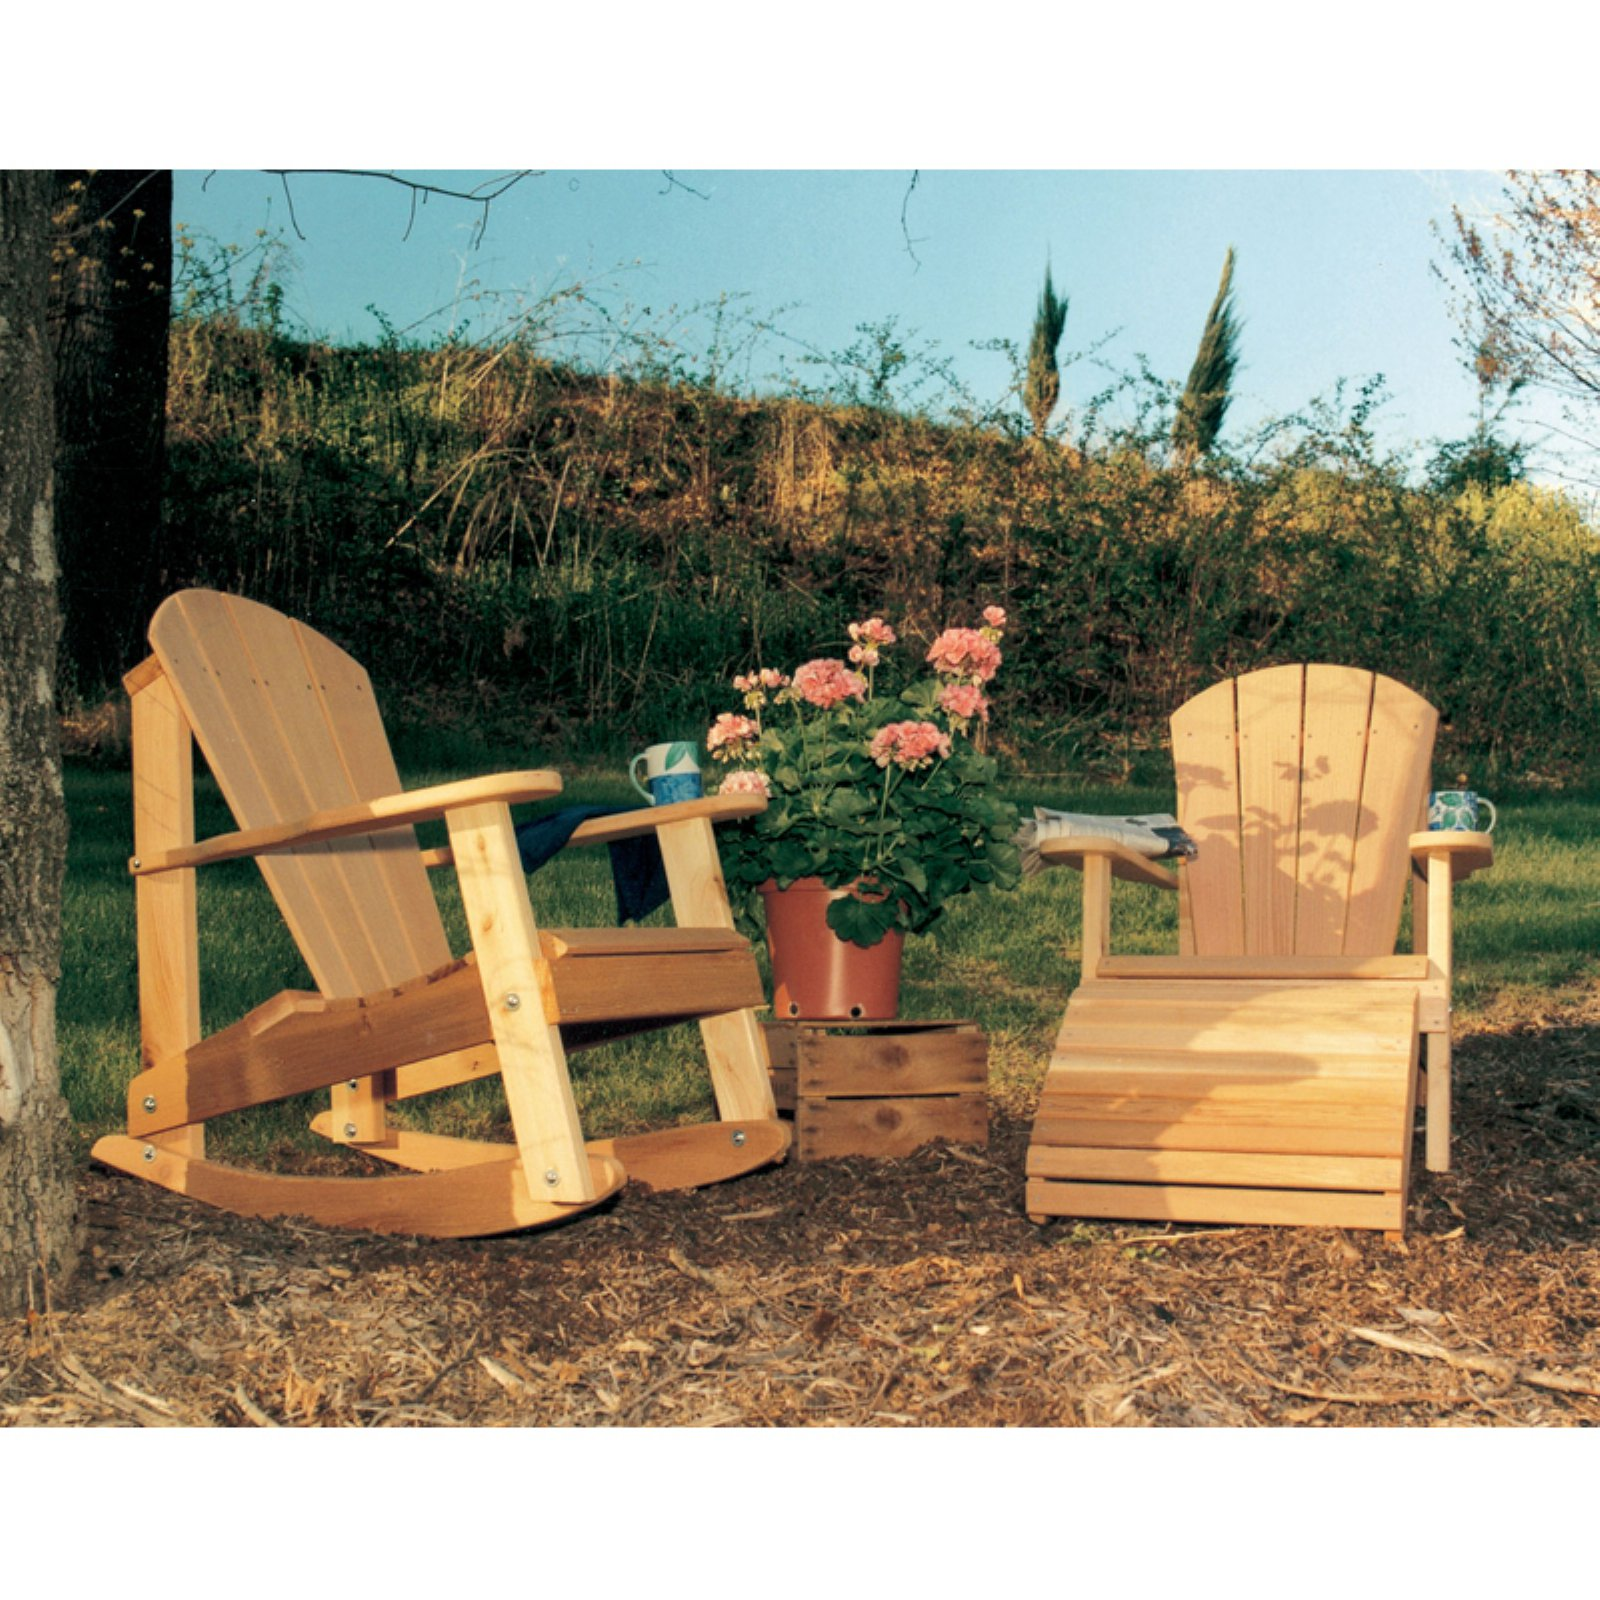 Creekvine Designs Cedar Adirondack Chair with Footrest and Rocker 3 pc. Set